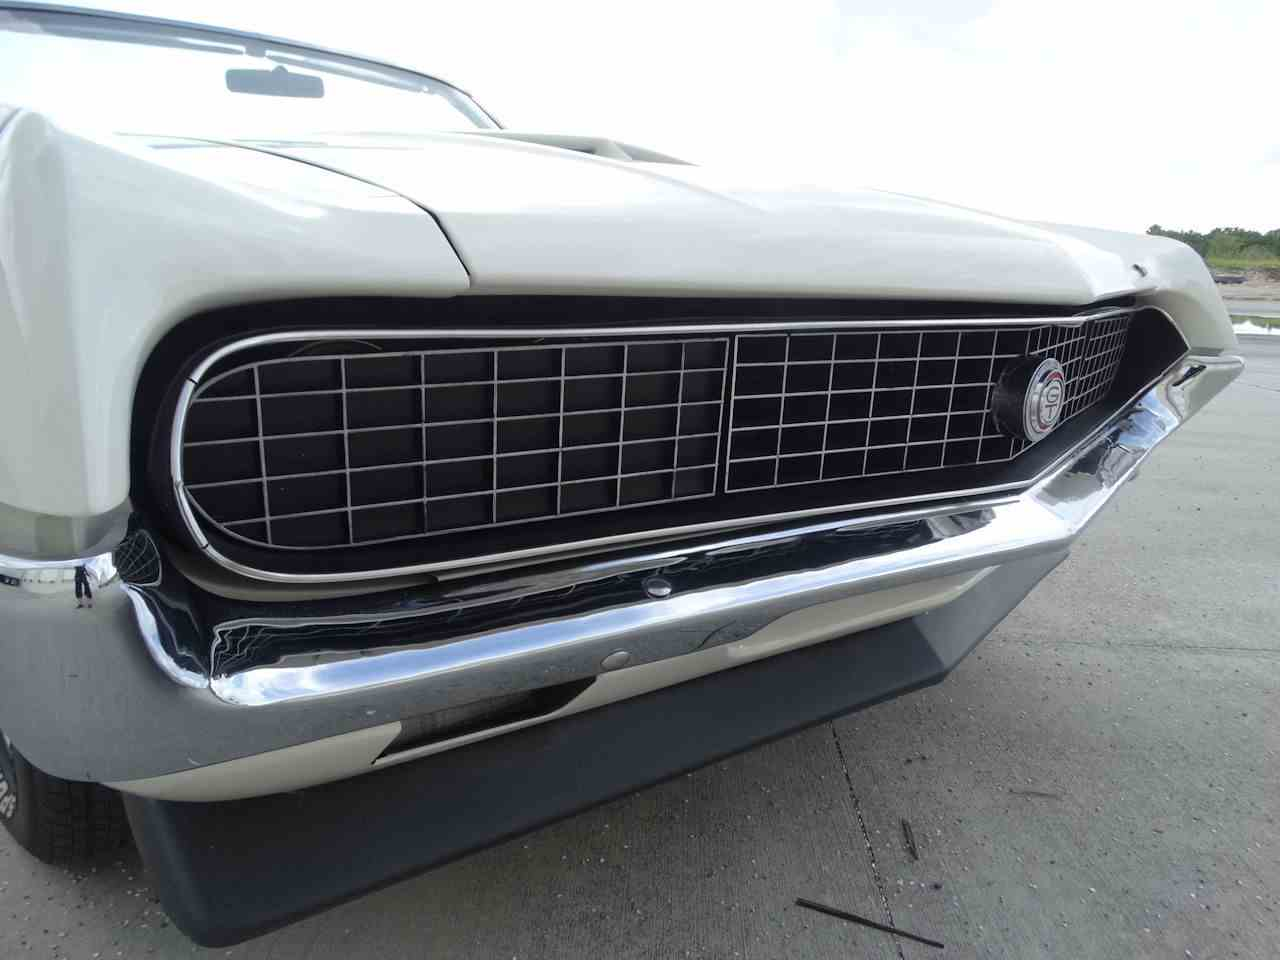 Large Picture of Classic '71 Ford Torino located in Coral Springs Florida - $68,000.00 Offered by Gateway Classic Cars - Fort Lauderdale - LG4B